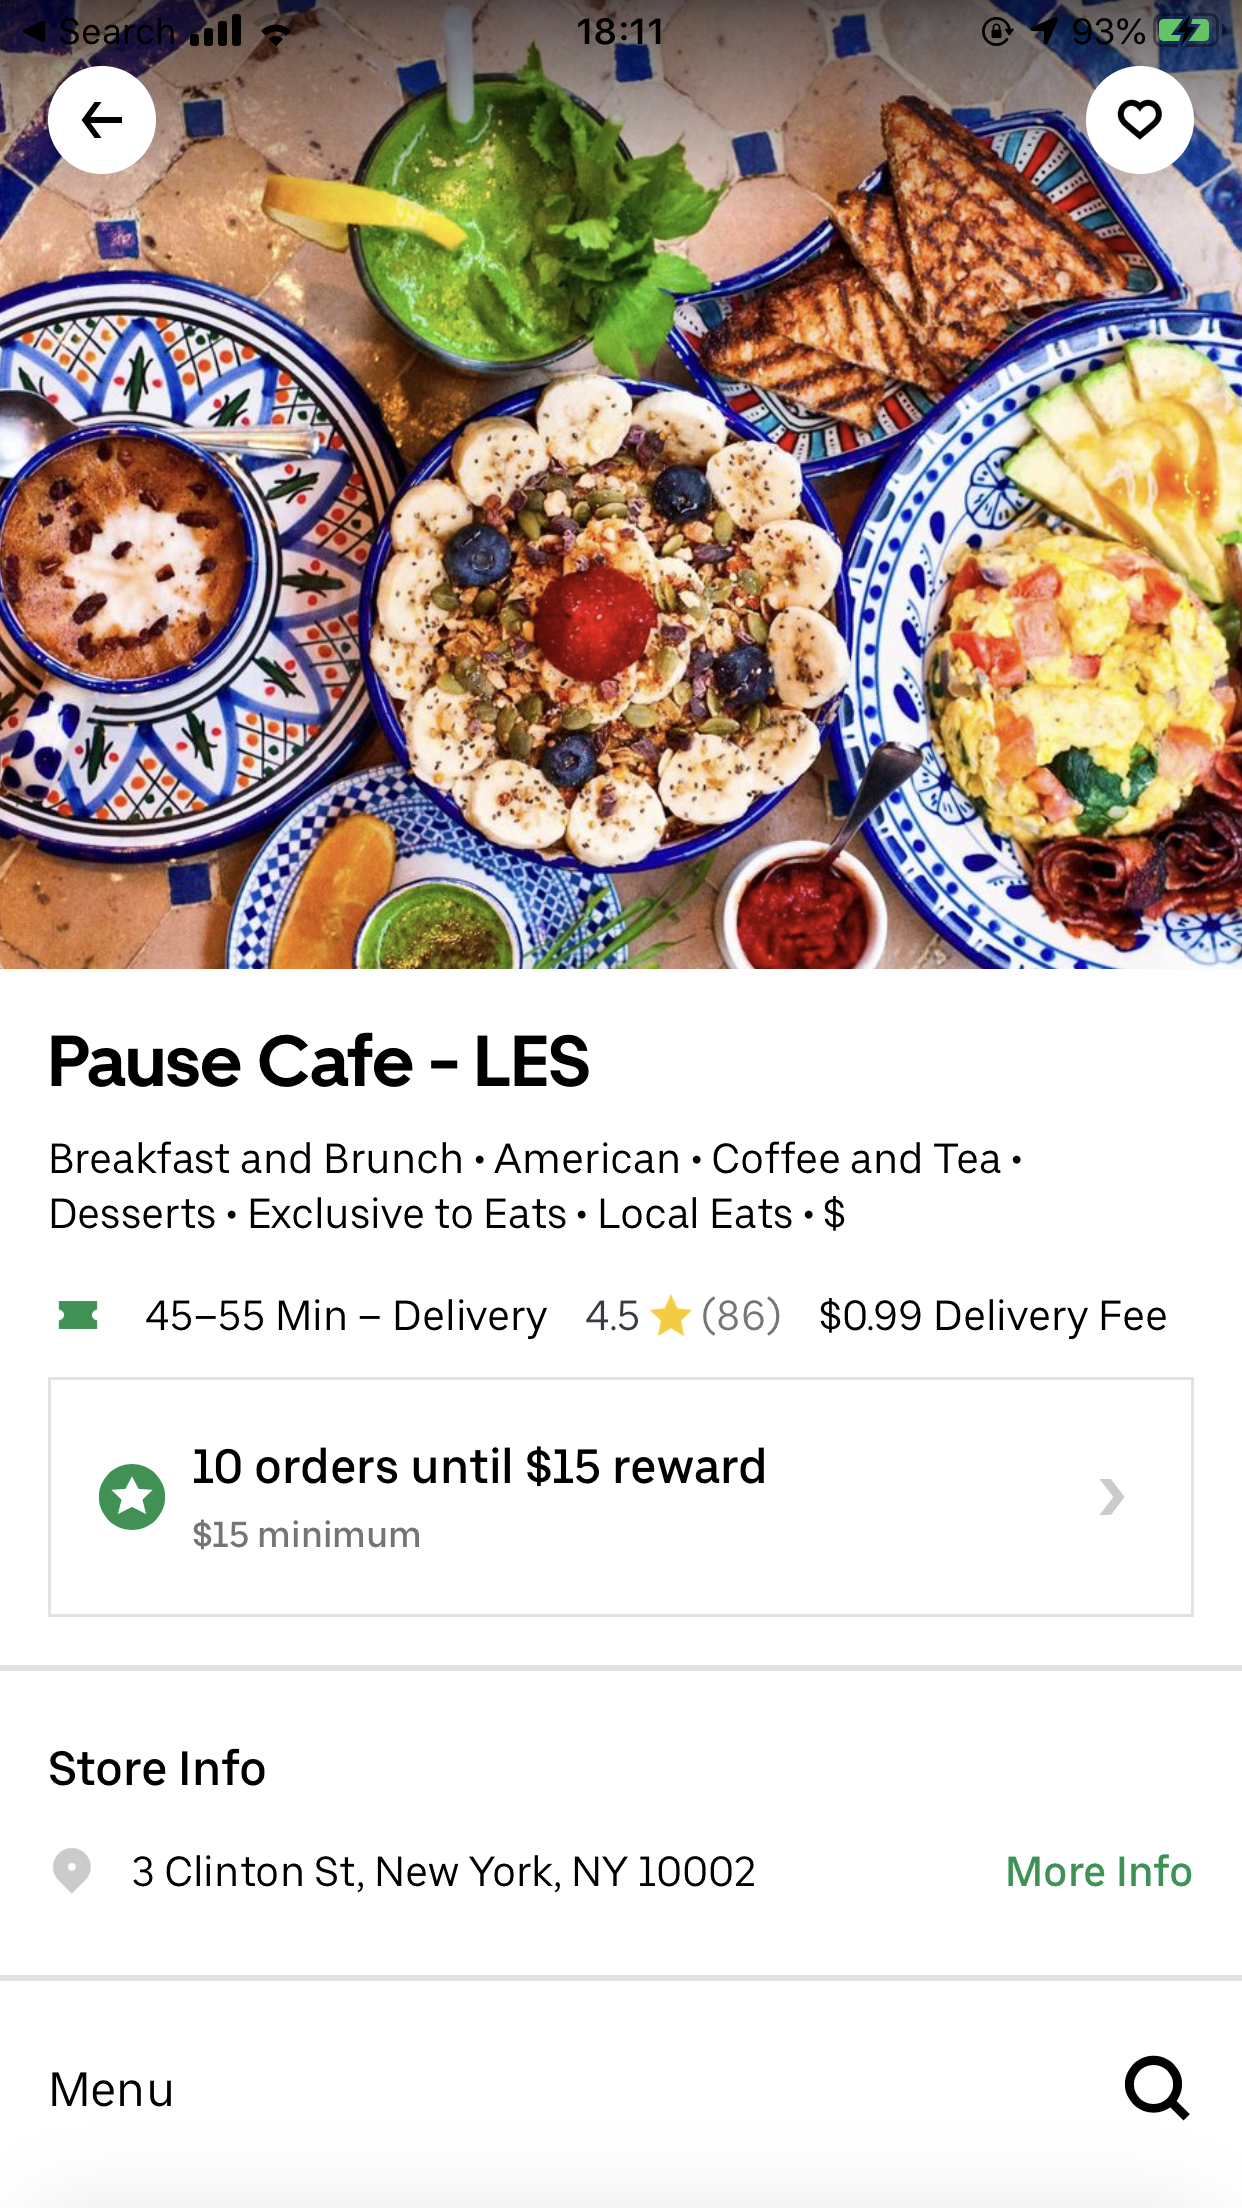 Stand Out in Food Delivery Apps